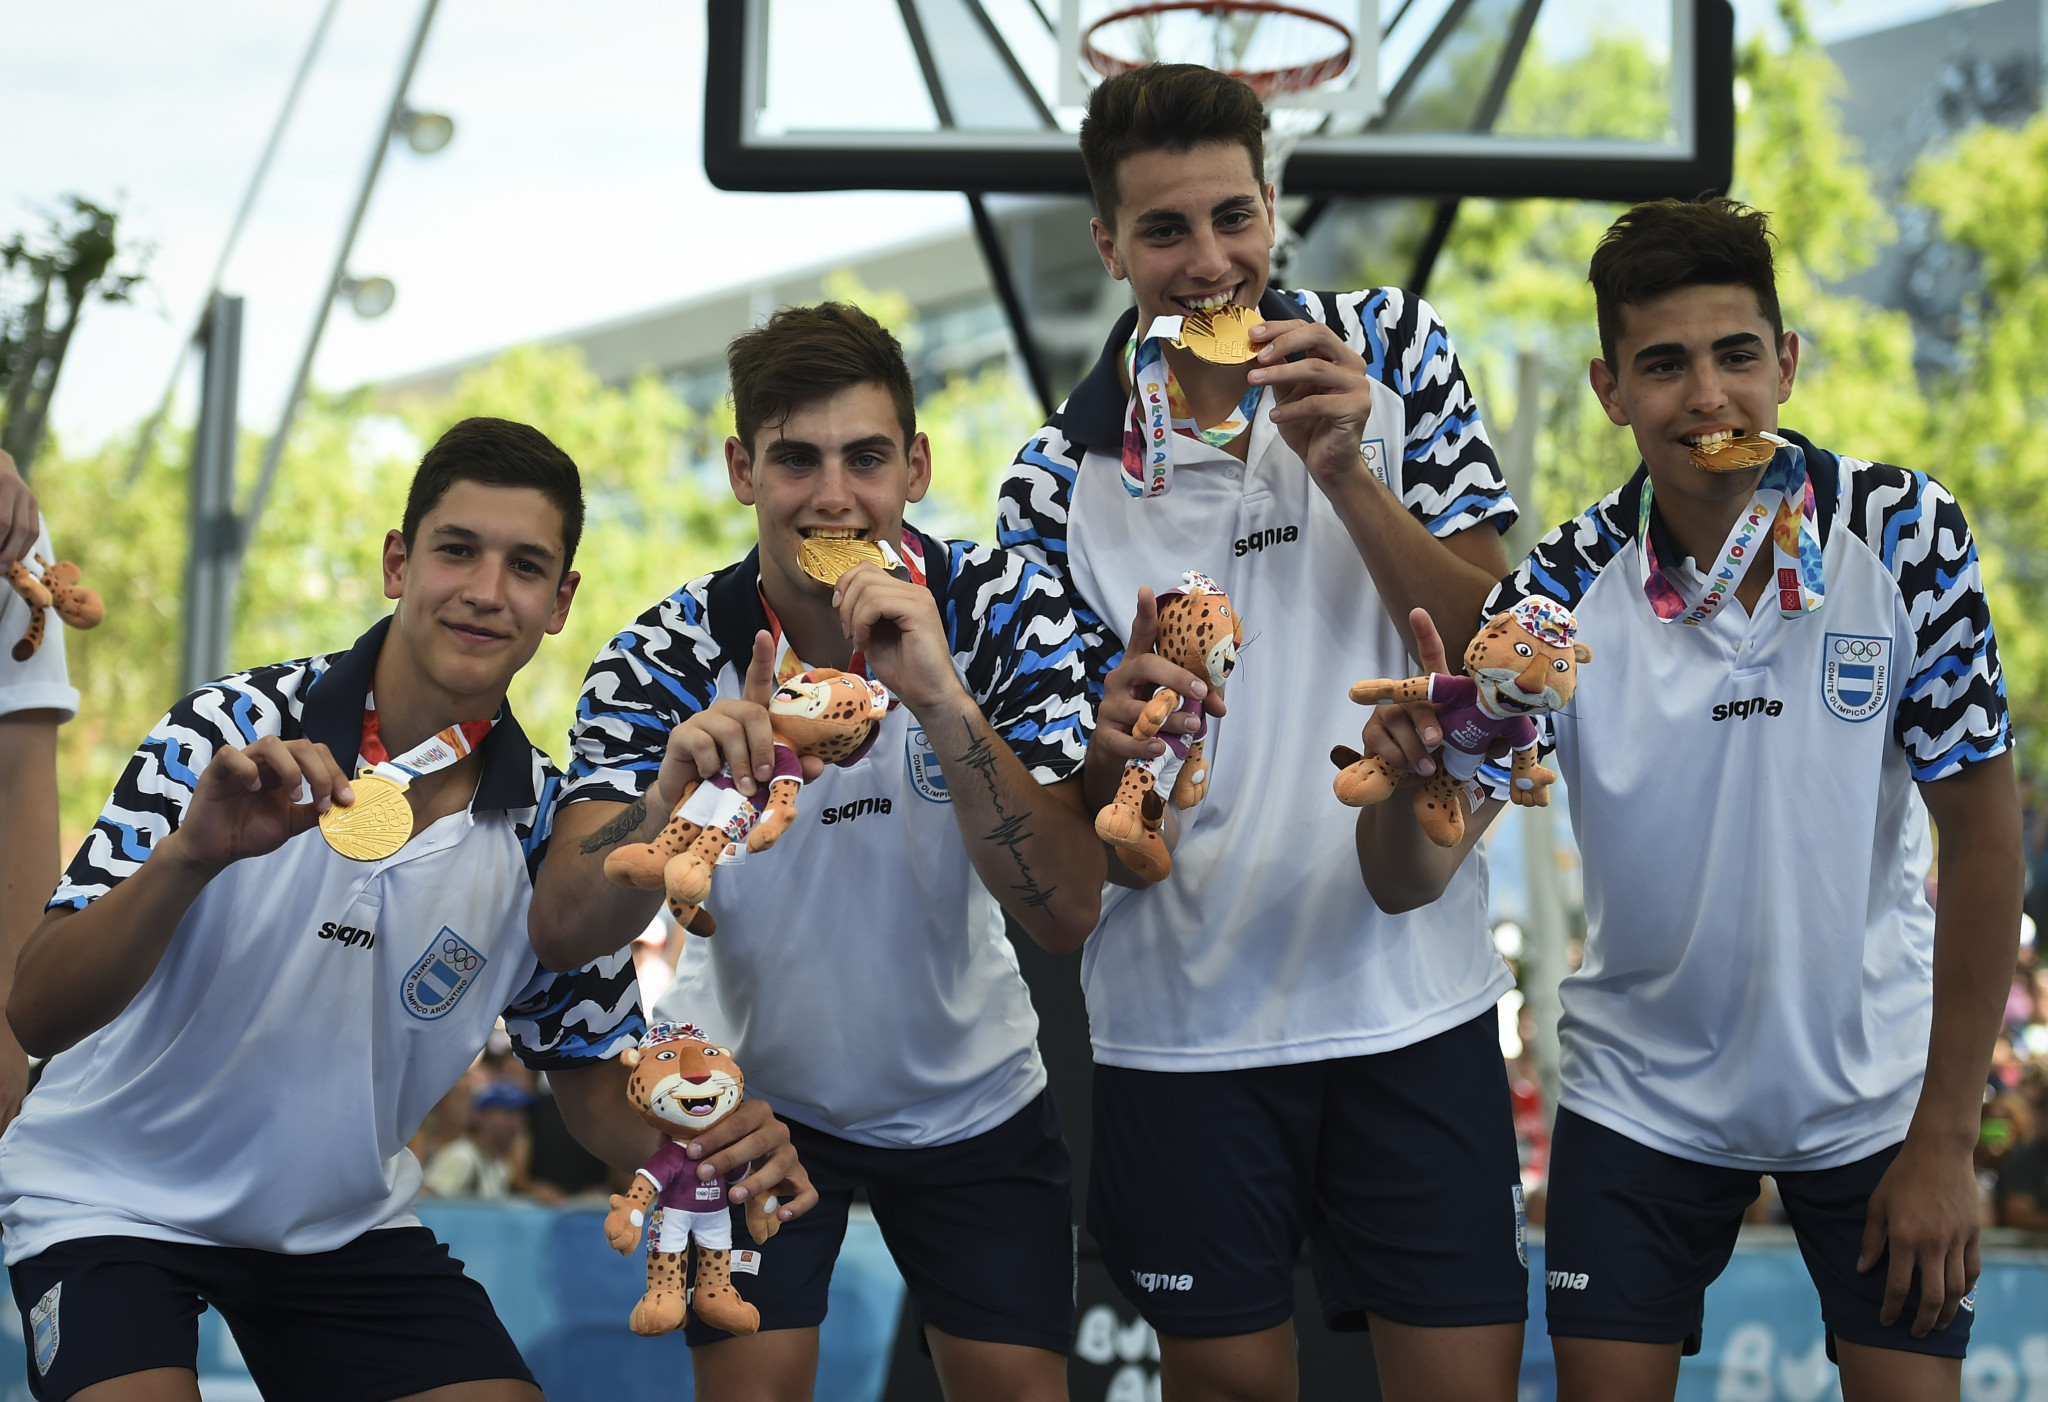 Argentina won the men's 3x3 basketball title ©Getty Images